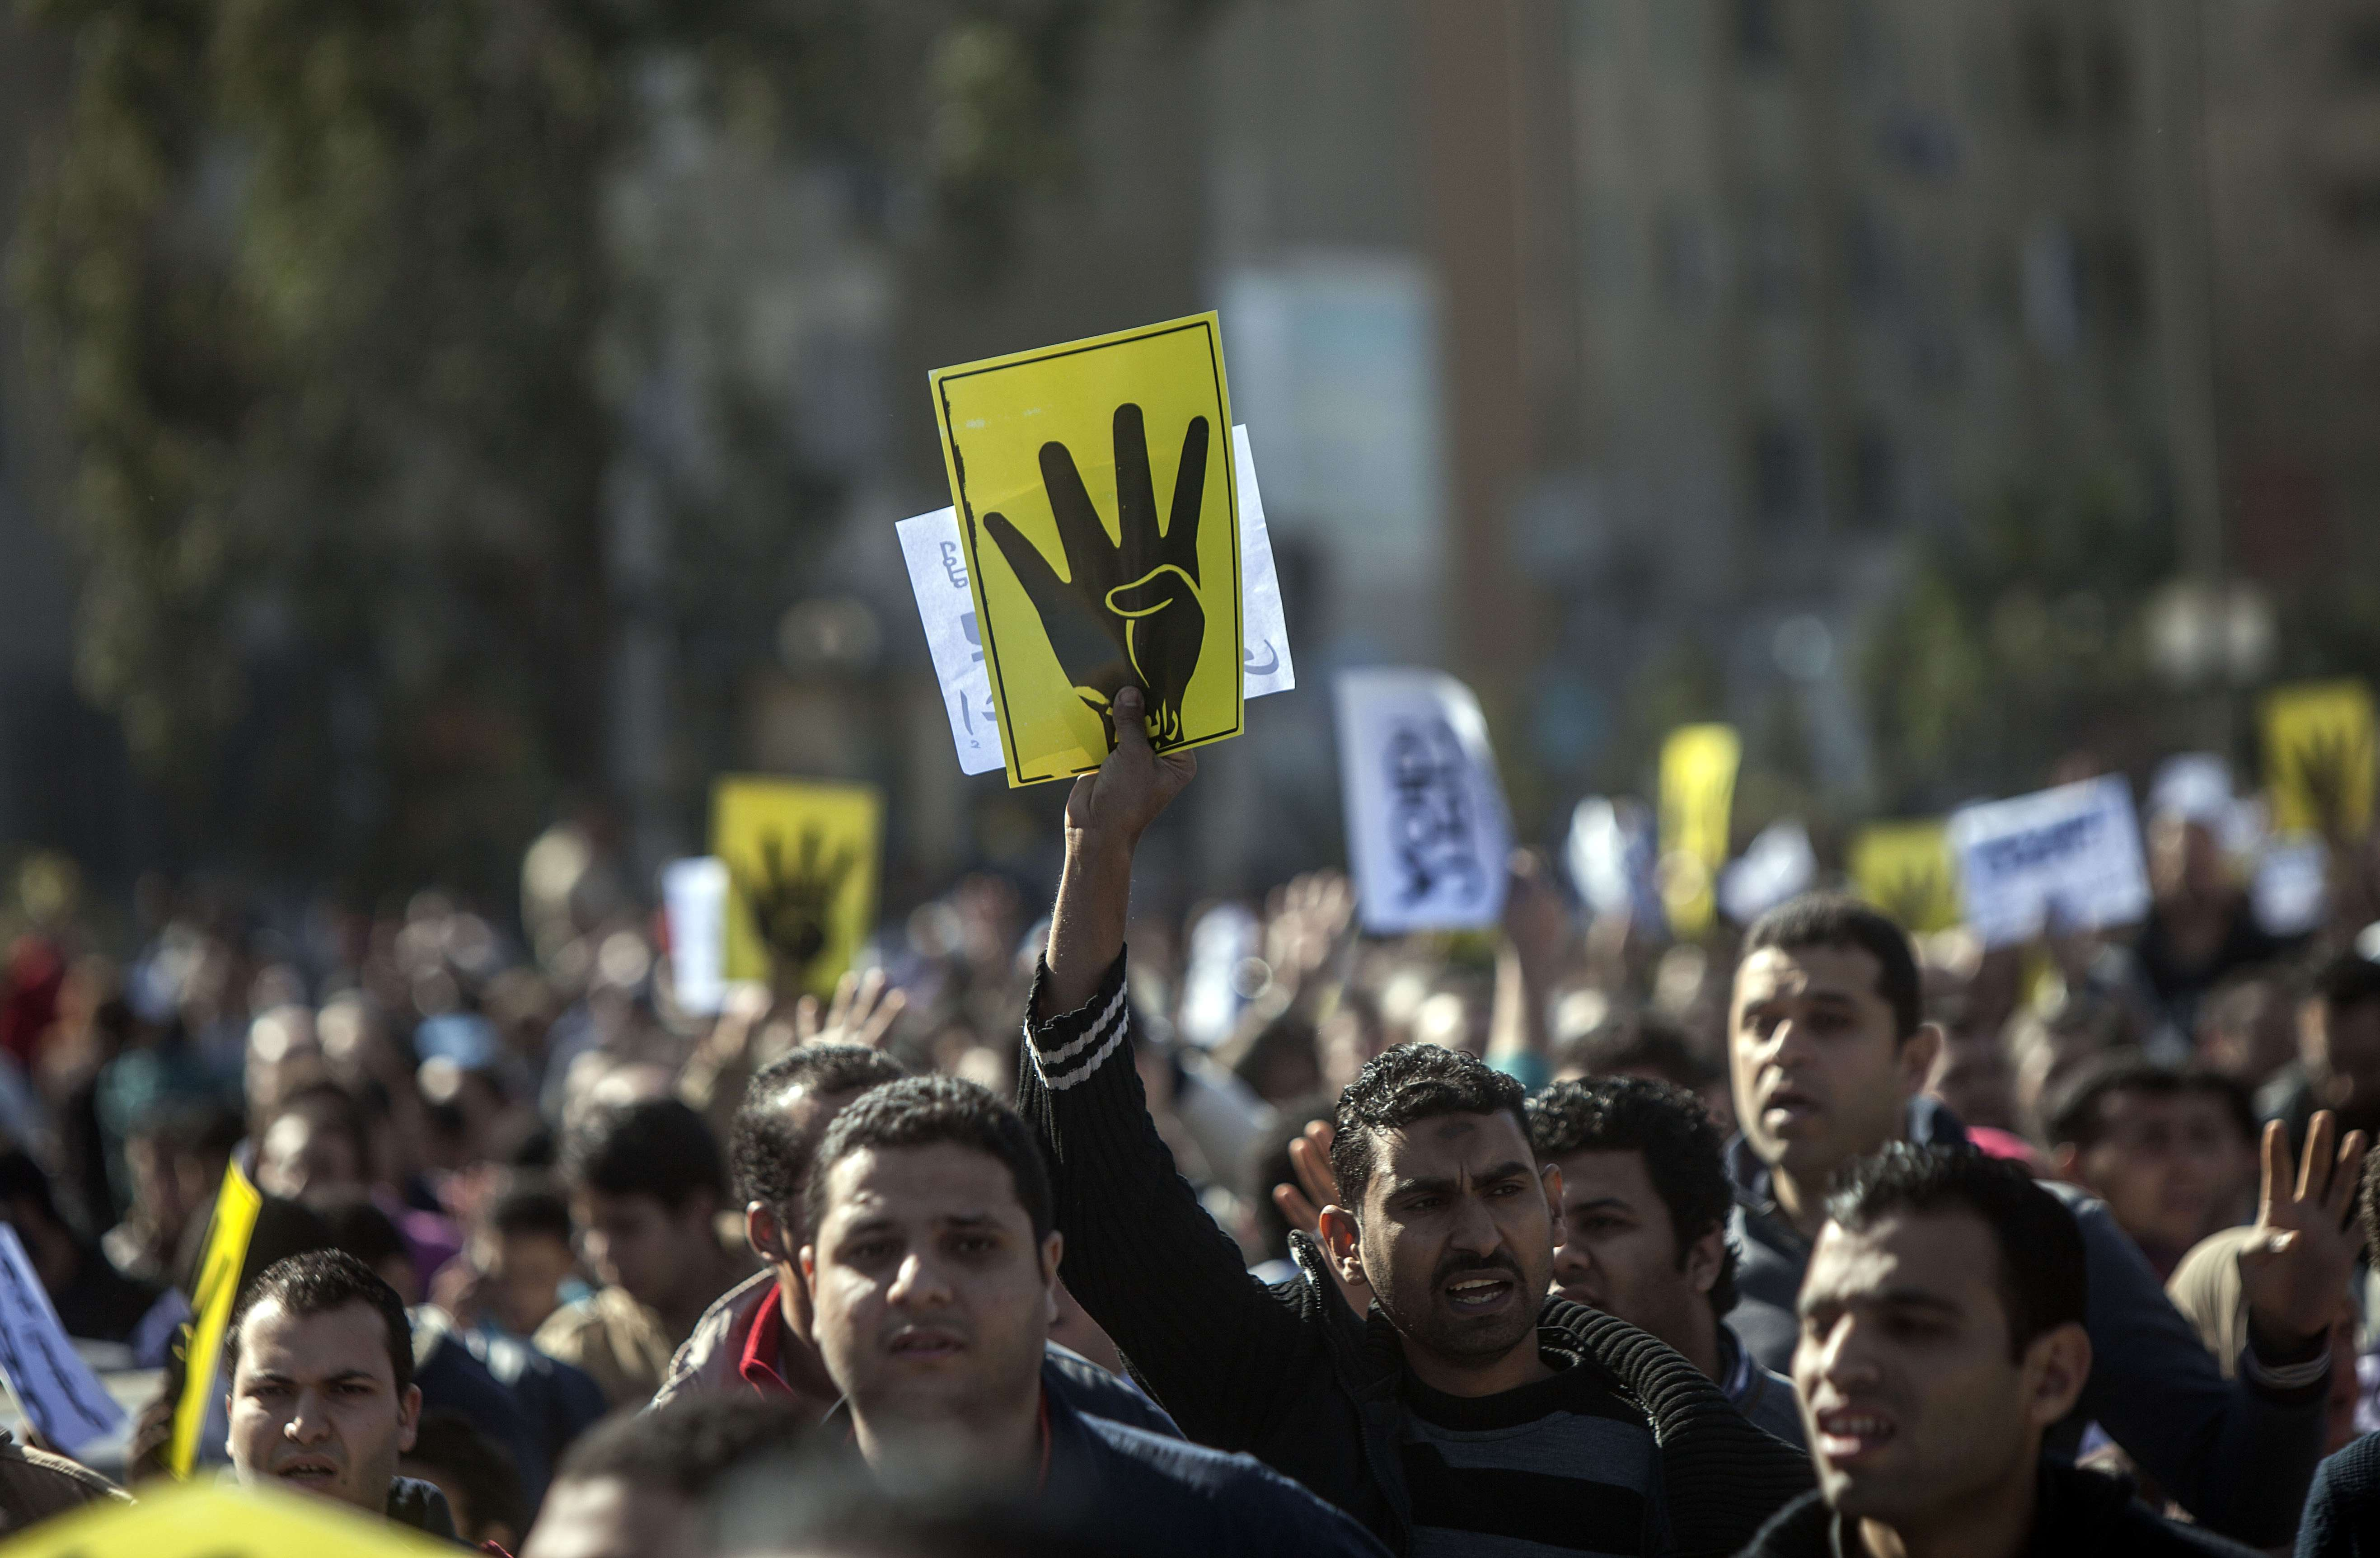 """Supporters of the Muslim Brotherhood chant slogans and raise four fingers, the symbol known as """"Rabaa"""", which means four in Arabic, remembering those killed in the crackdown on the Rabaa al-Adawiya protest camp in Cairo last year, during a demonstration in Cairo on January 24, 2014. A suicide bomber struck Cairo police headquarters on Friday, the first of three bombings in the Egyptian capital that killed five people ahead of the anniversary of the 2011 uprising.  (AFP PHOTO/MAHMOUD KHALED)"""